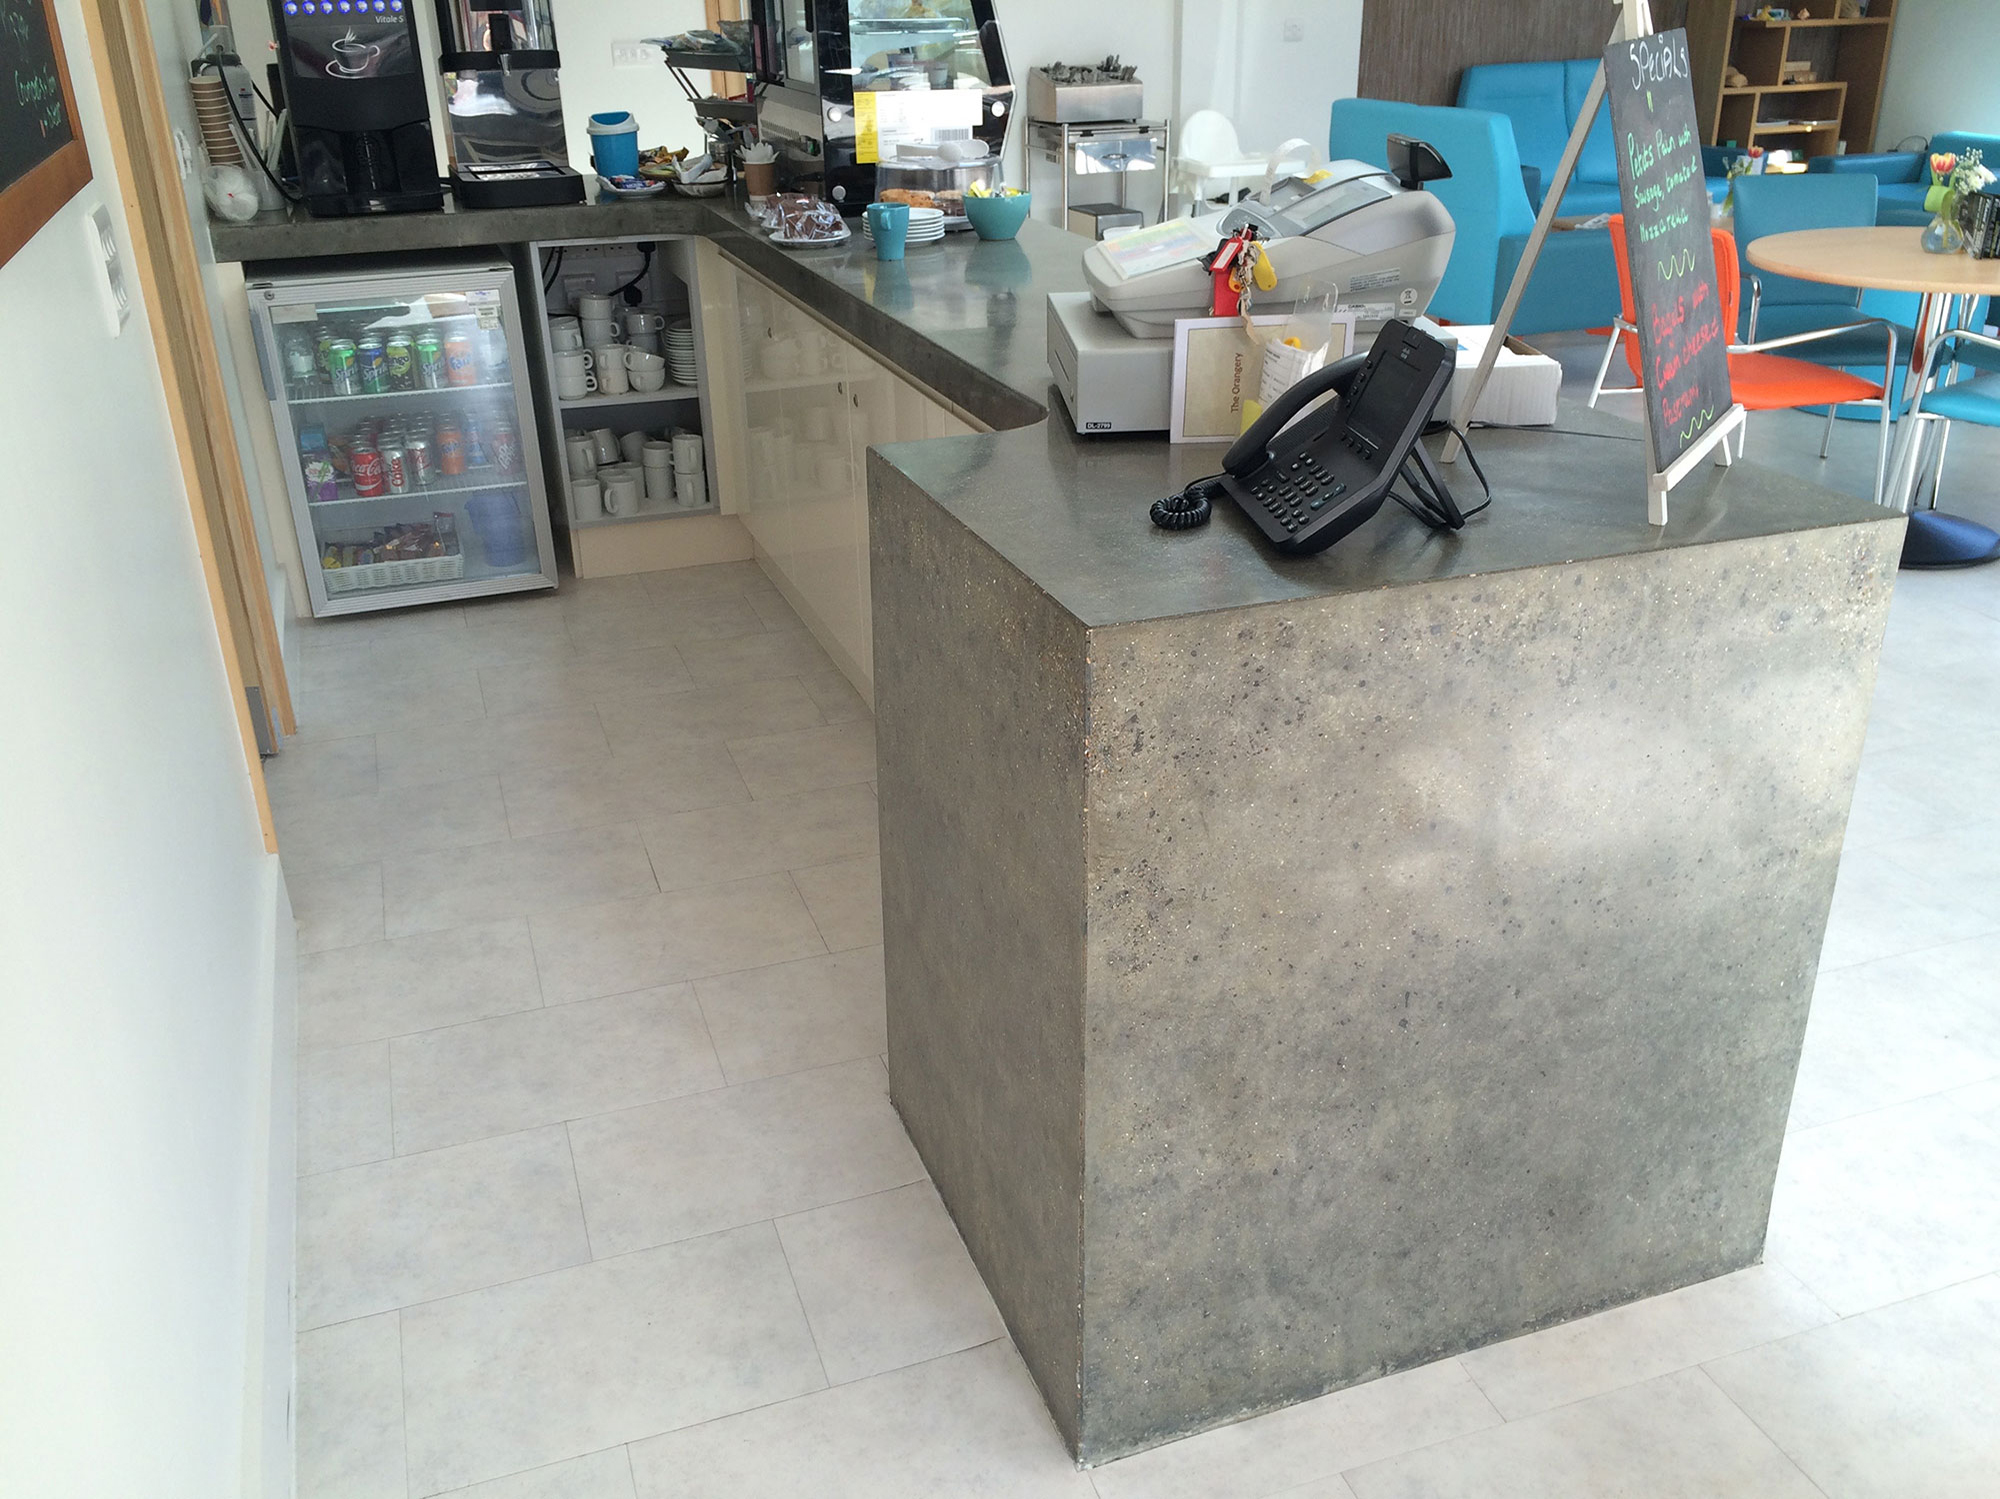 Conscious Forms - st raphaels hospice cheam orangery cafe polished concrete service counter with double waterfall ends standard grey radius internal corners exposed aggregate finish